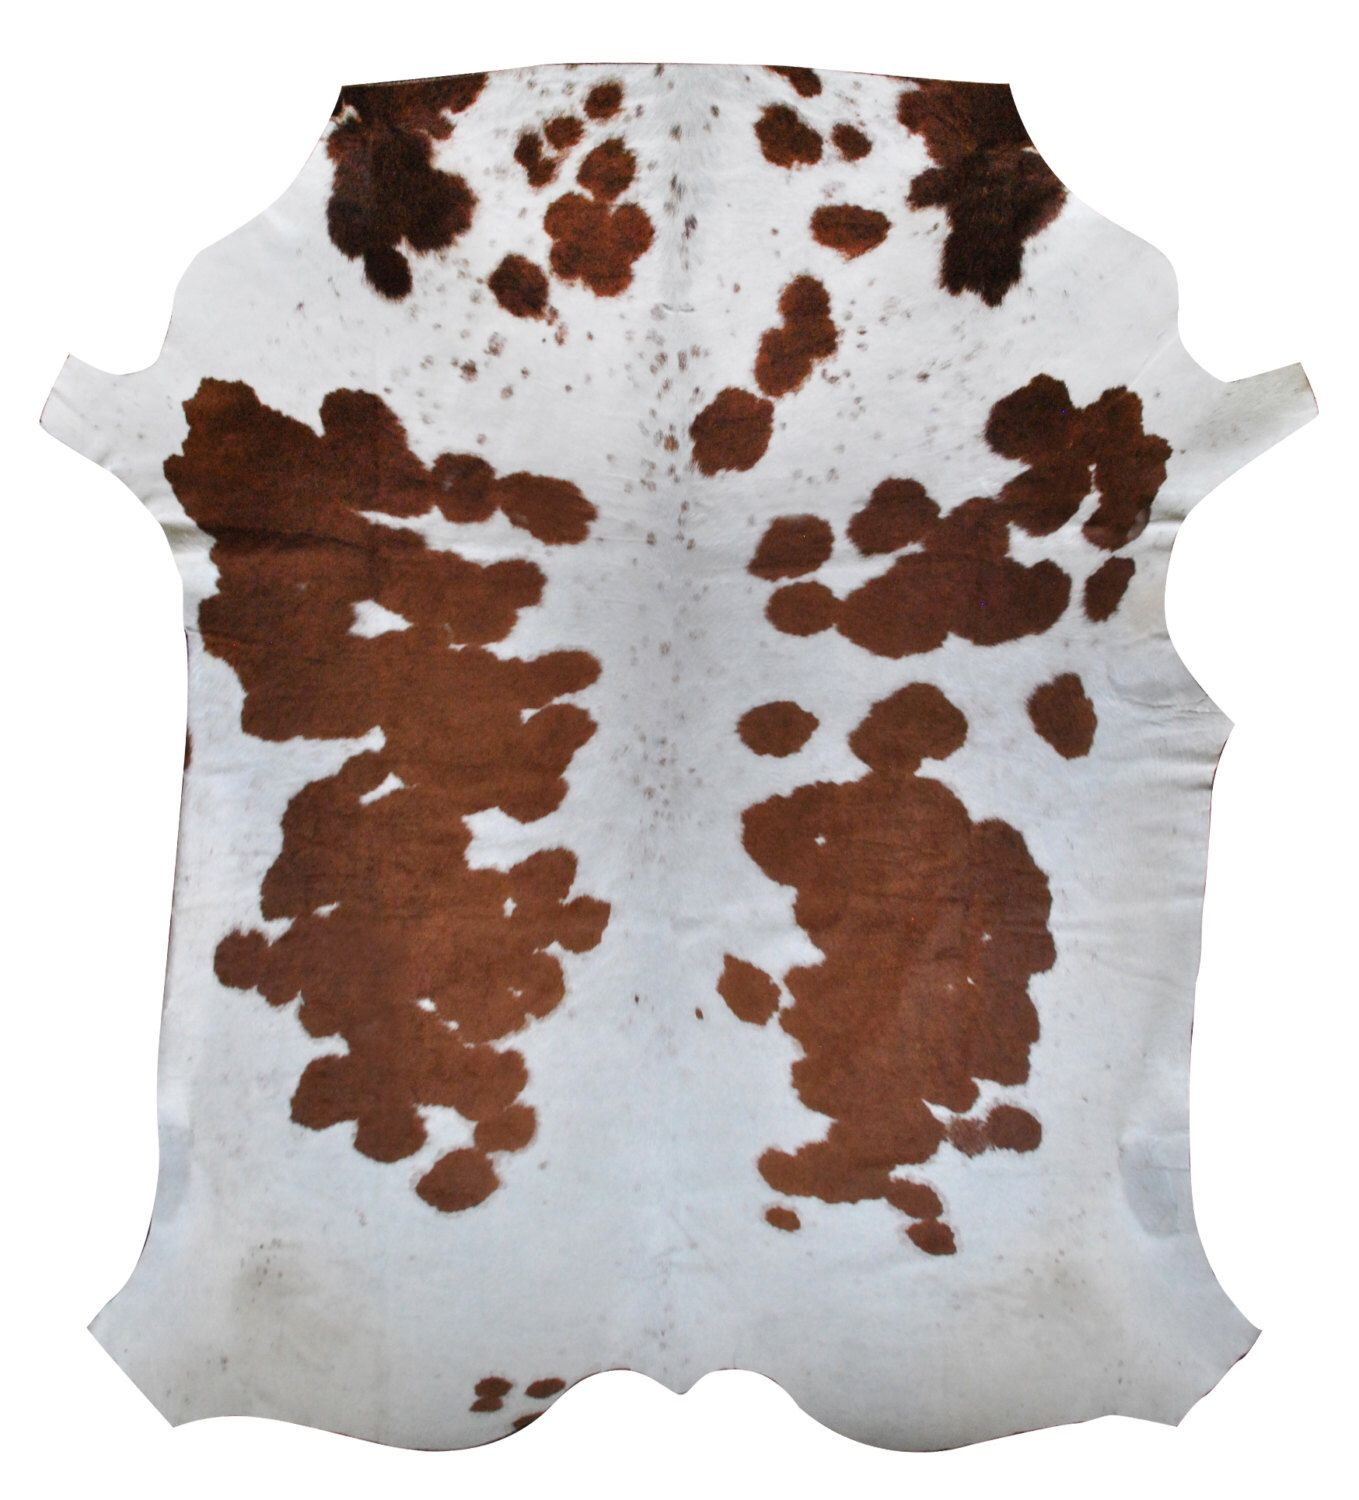 Cowhide Rug Small Medium Brown And White Cow Hide From Africa Skin Animal That Would Make Any Room More Luxurious Stylish